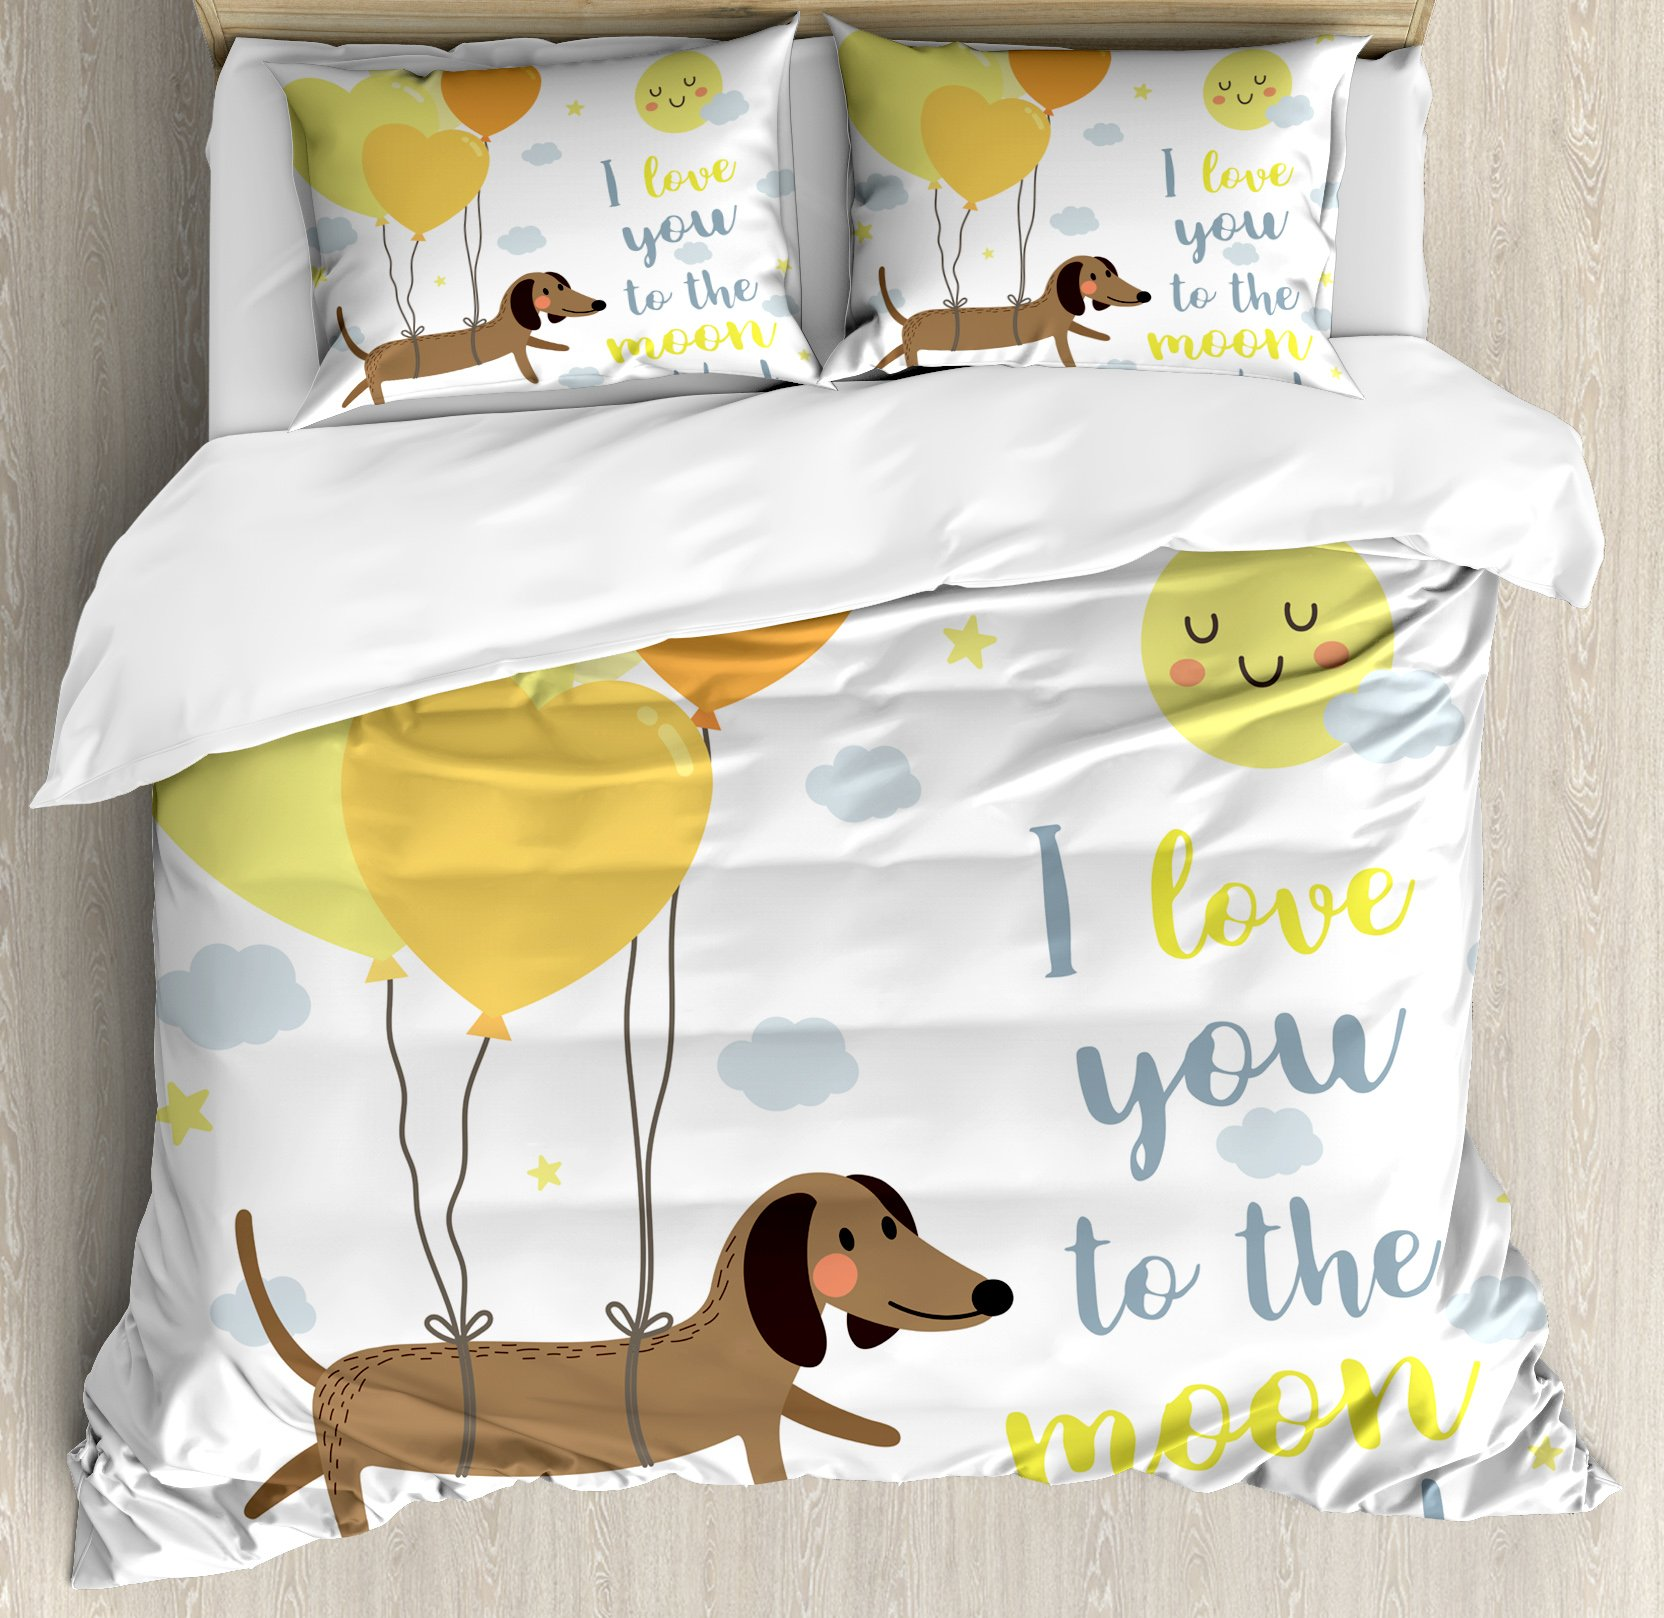 I Love You King Size Duvet Cover Set by Ambesonne, Cute Dog with Balloons and Hearts Sun Clouds Puppy Baby Best Friends, Decorative 3 Piece Bedding Set with 2 Pillow Shams, Yellow Cocoa Blue Grey